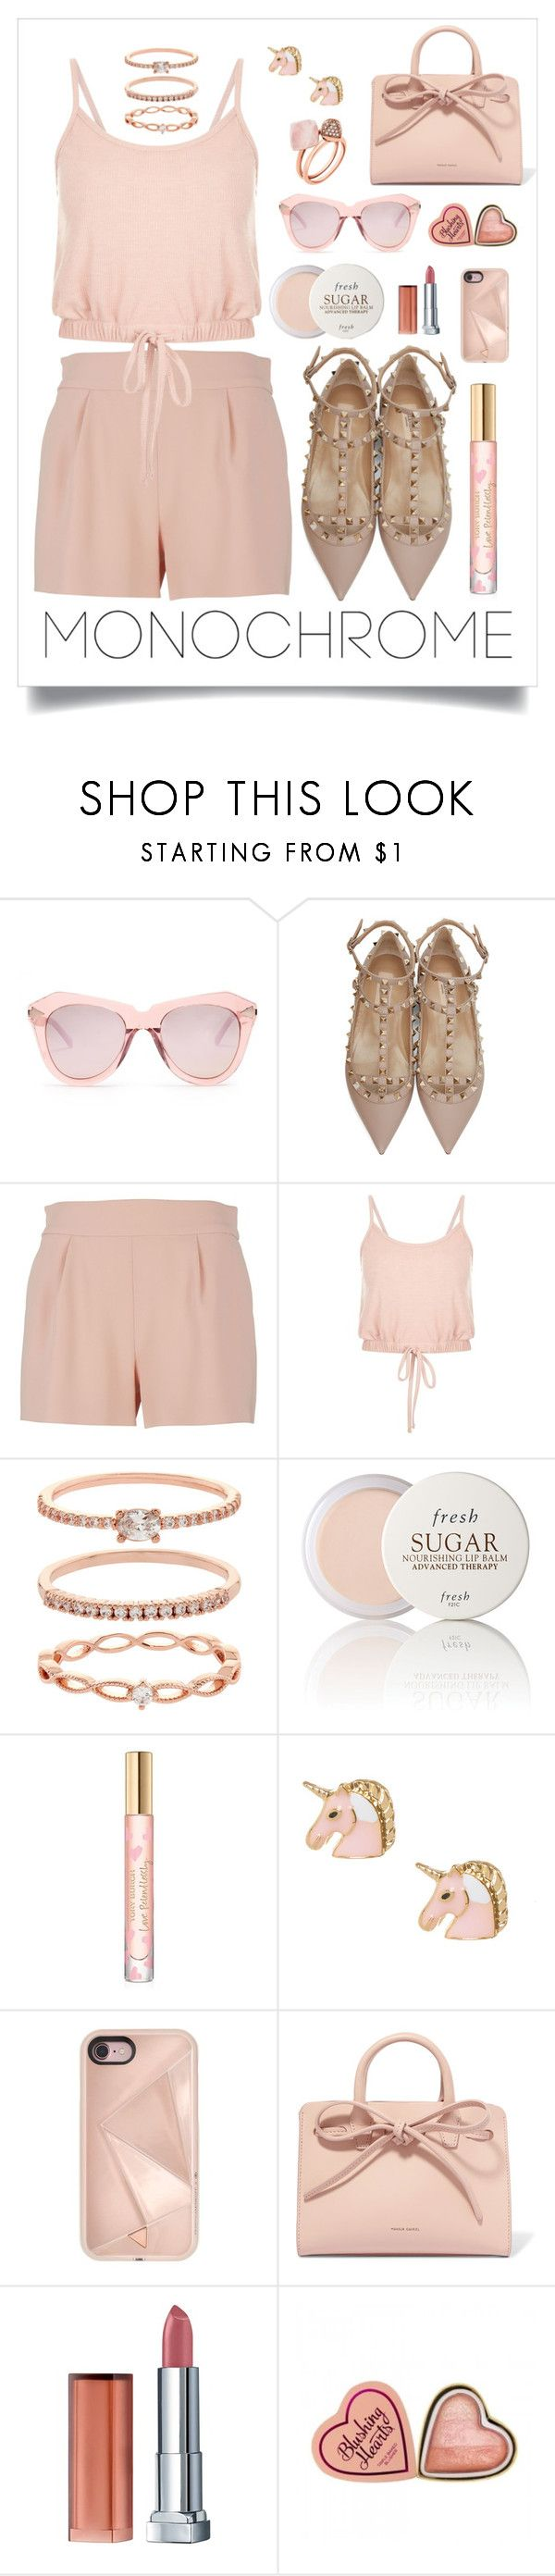 """""""Blush"""" by seasidedreaming ❤ liked on Polyvore featuring Karen Walker, Valentino, Moschino, Accessorize, Fresh, Tory Burch, Rebecca Minkoff, Mansur Gavriel, Maybelline and Michael Kors"""